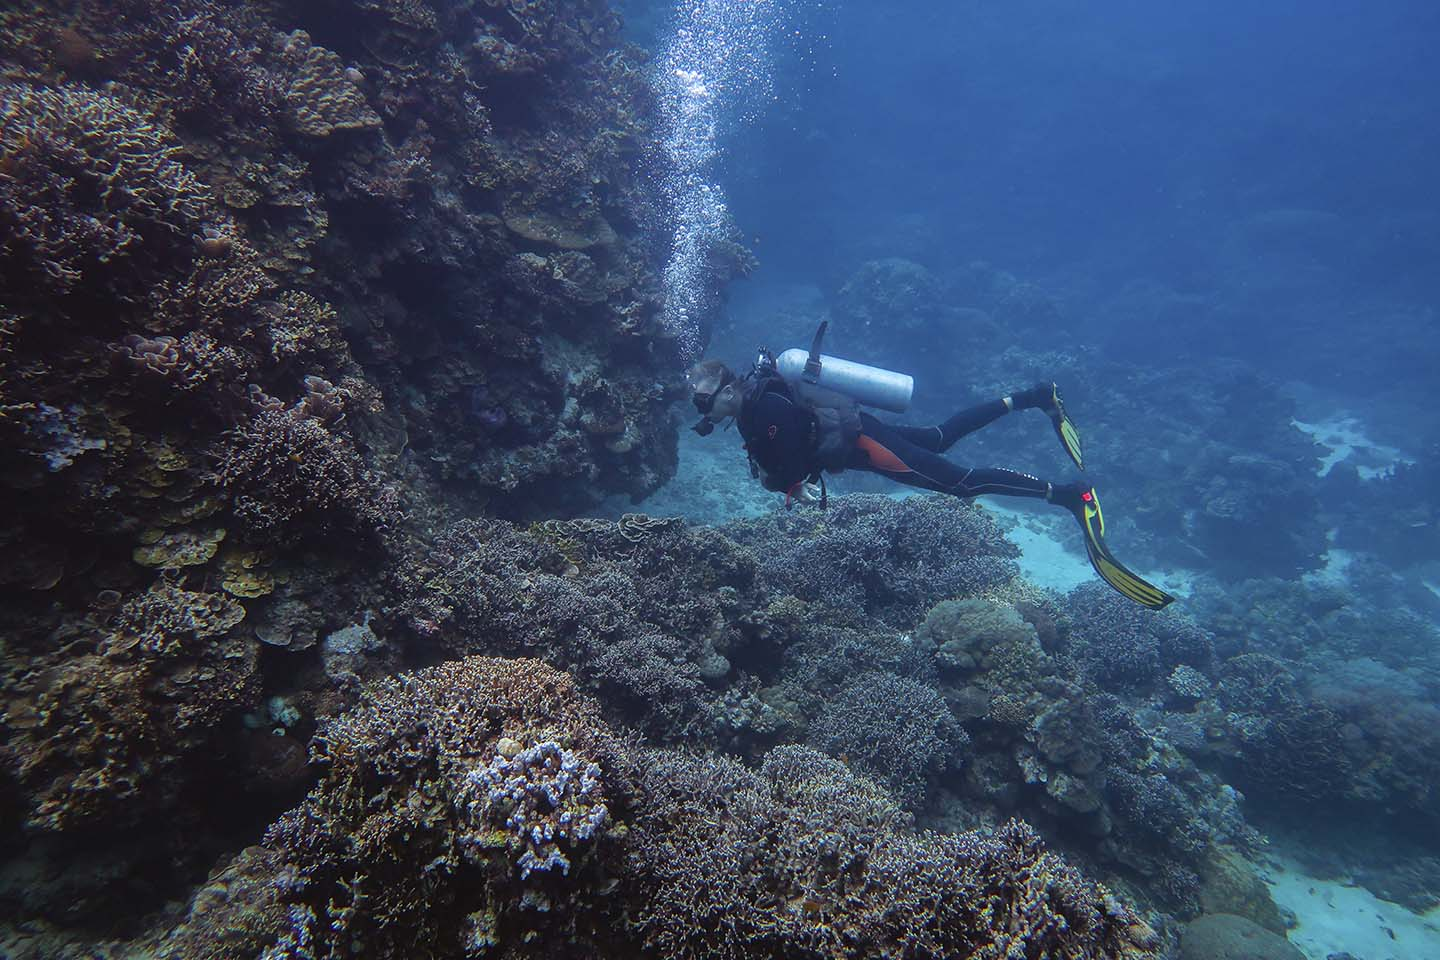 Our dive guide looking for interesting marine life to show us while diving in Maite dive site in Siquijor